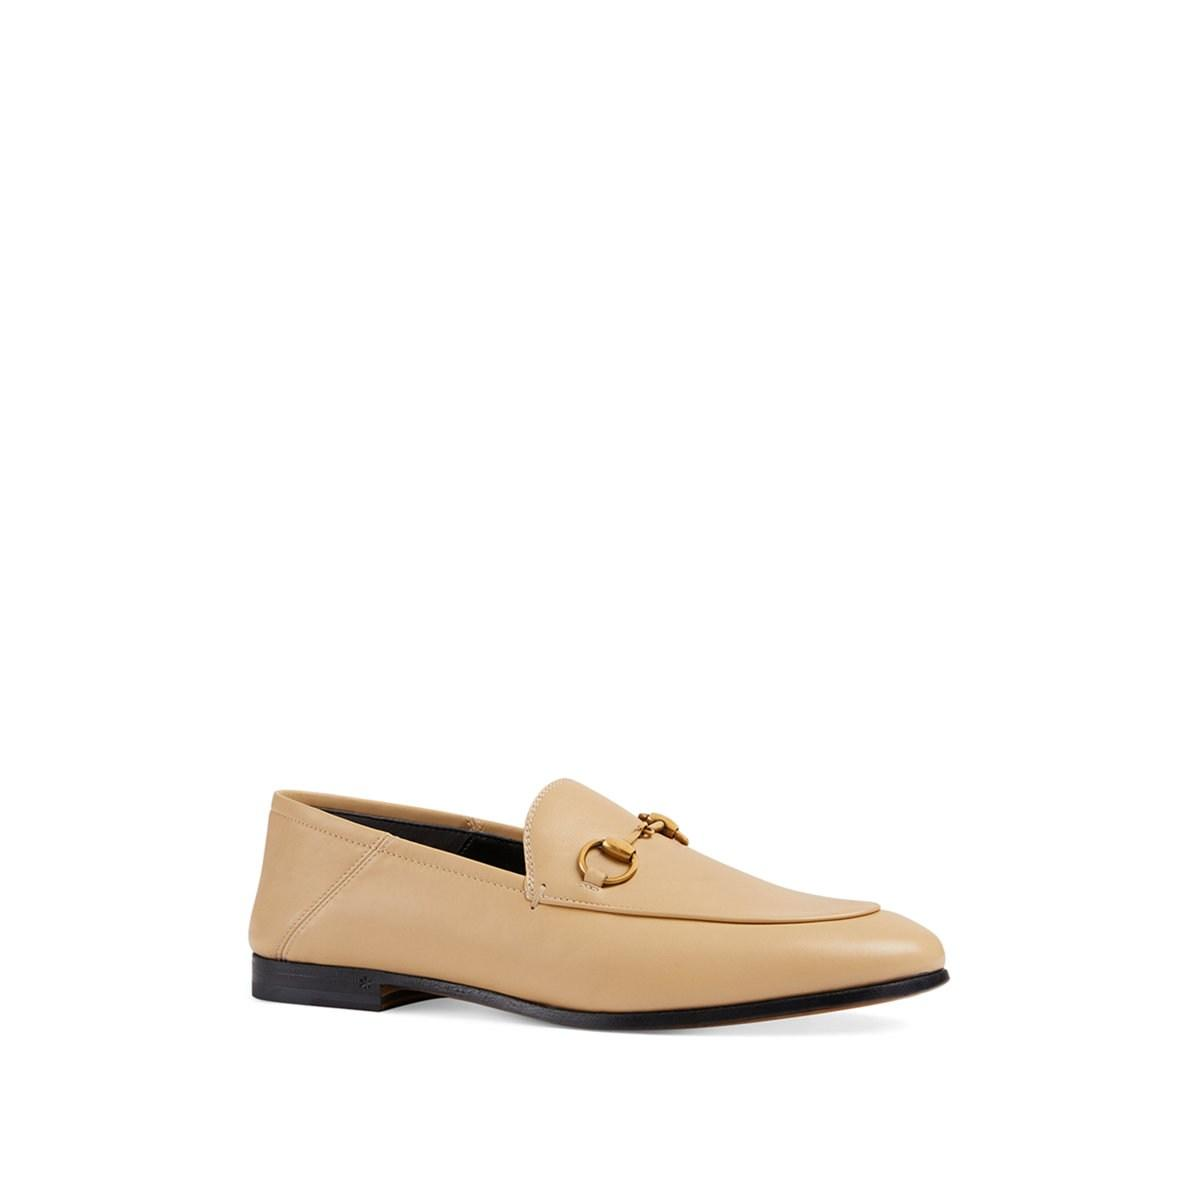 a2e6539b357 Gucci - Natural Brixton Leather Loafers - Lyst. View fullscreen